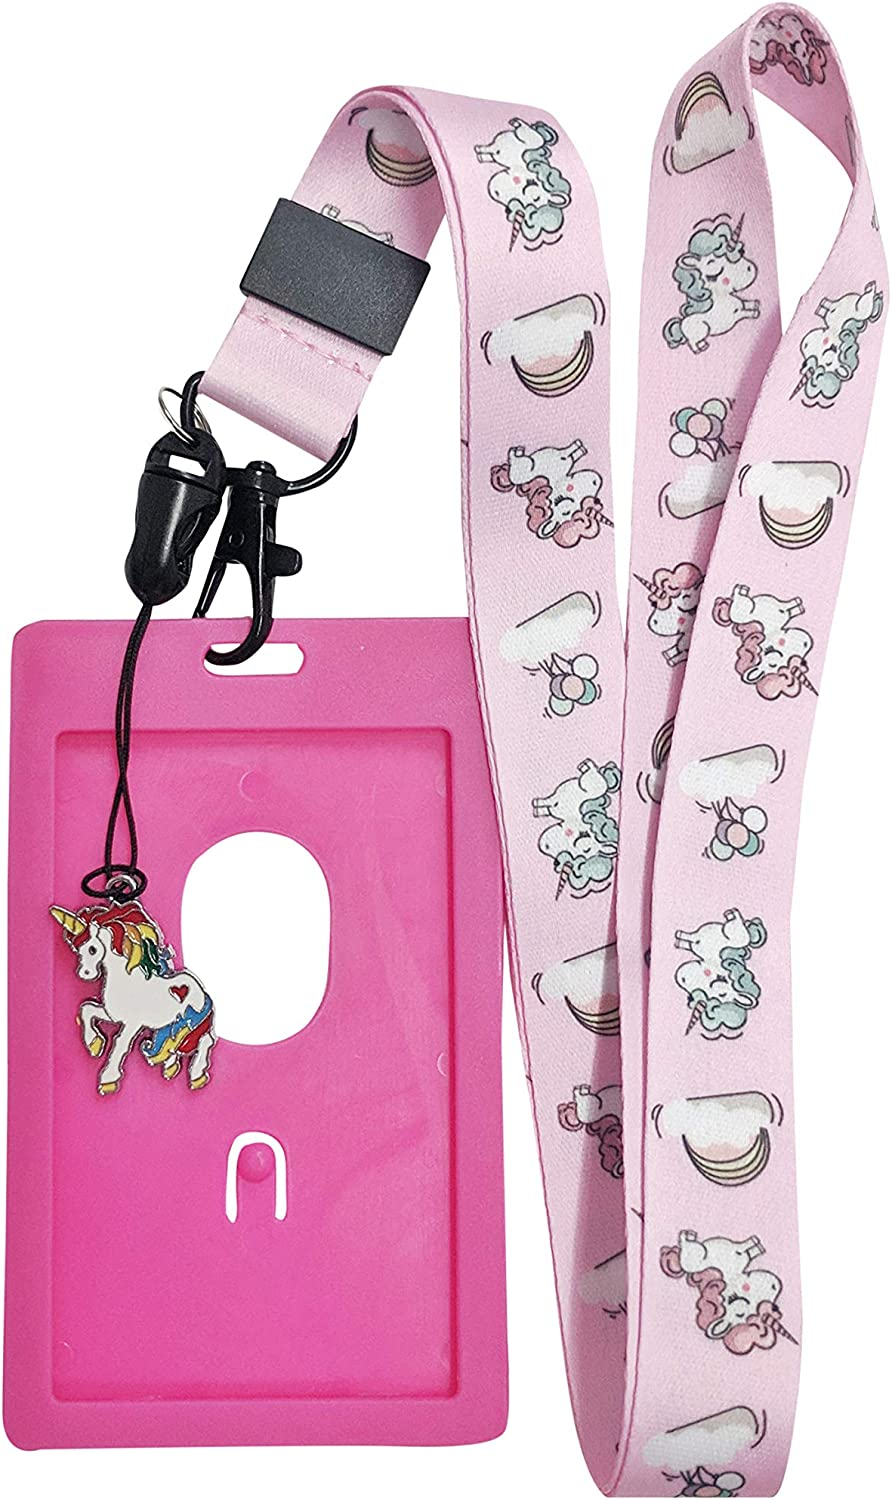 Cute Unicorn Lanyard w/ID Badge Holder and Charm - Various Styles (Pink)